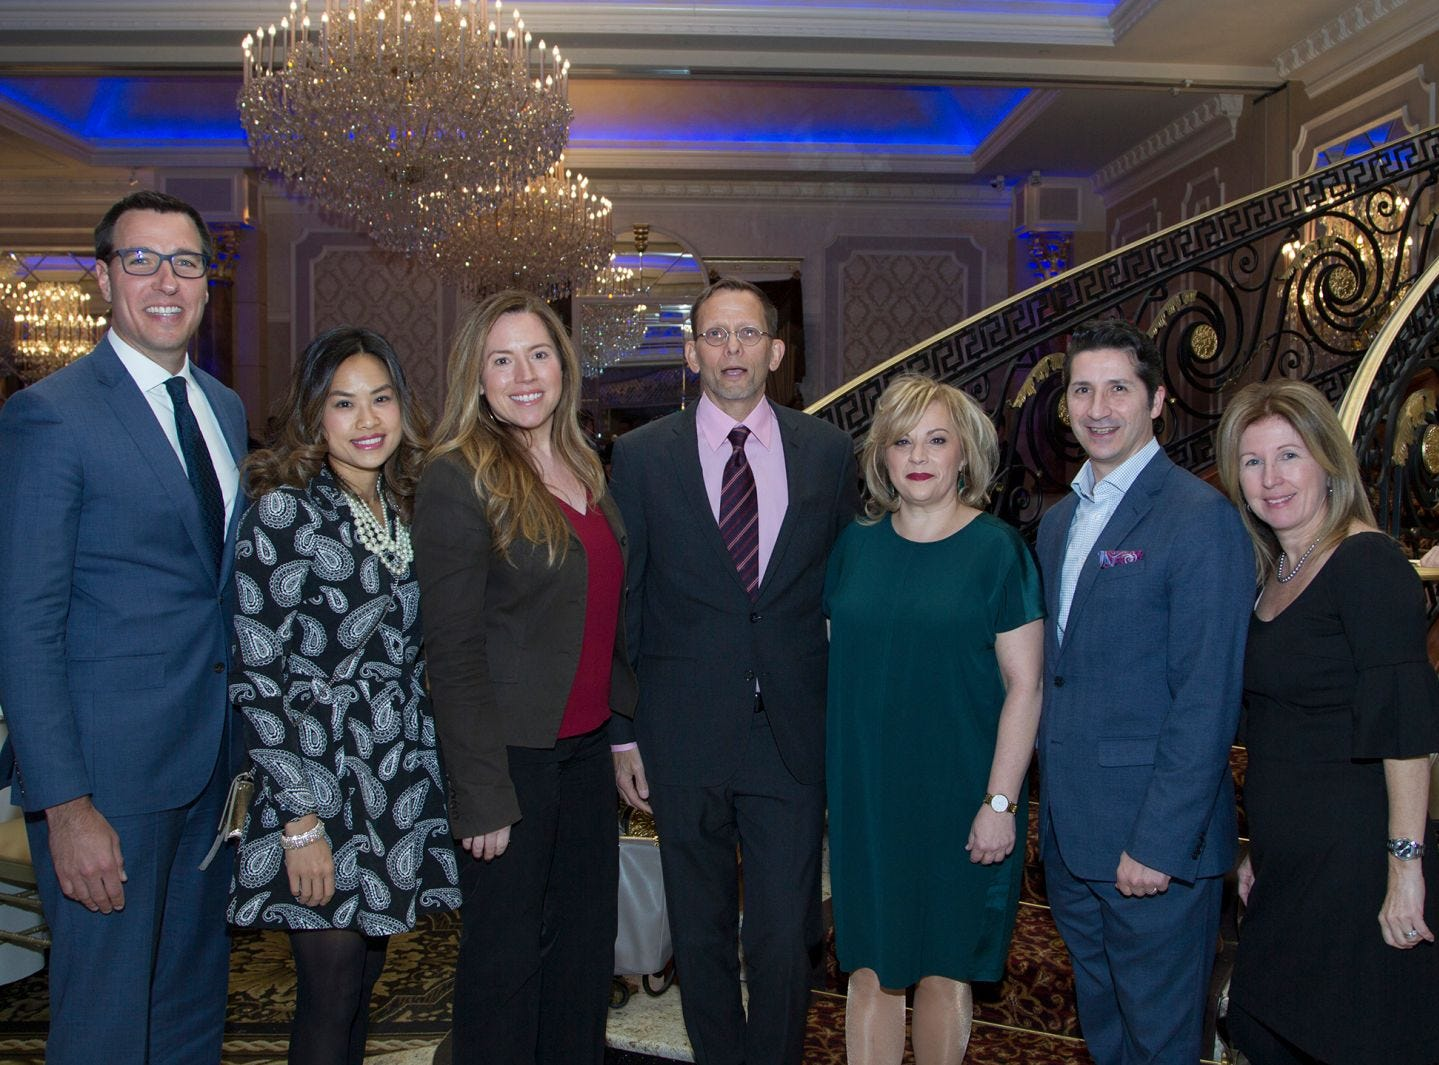 Jason Tardio, Tia Ly, Elizabeth Bellostas, Dr. David Duncan, Dr. Mary Ann Picone, Paul Sabatino, Mary Rowan. Holy Name Medical Center held its 2018 MS Center Awards Reception at the Venetian in Garfield. 10/23/2018